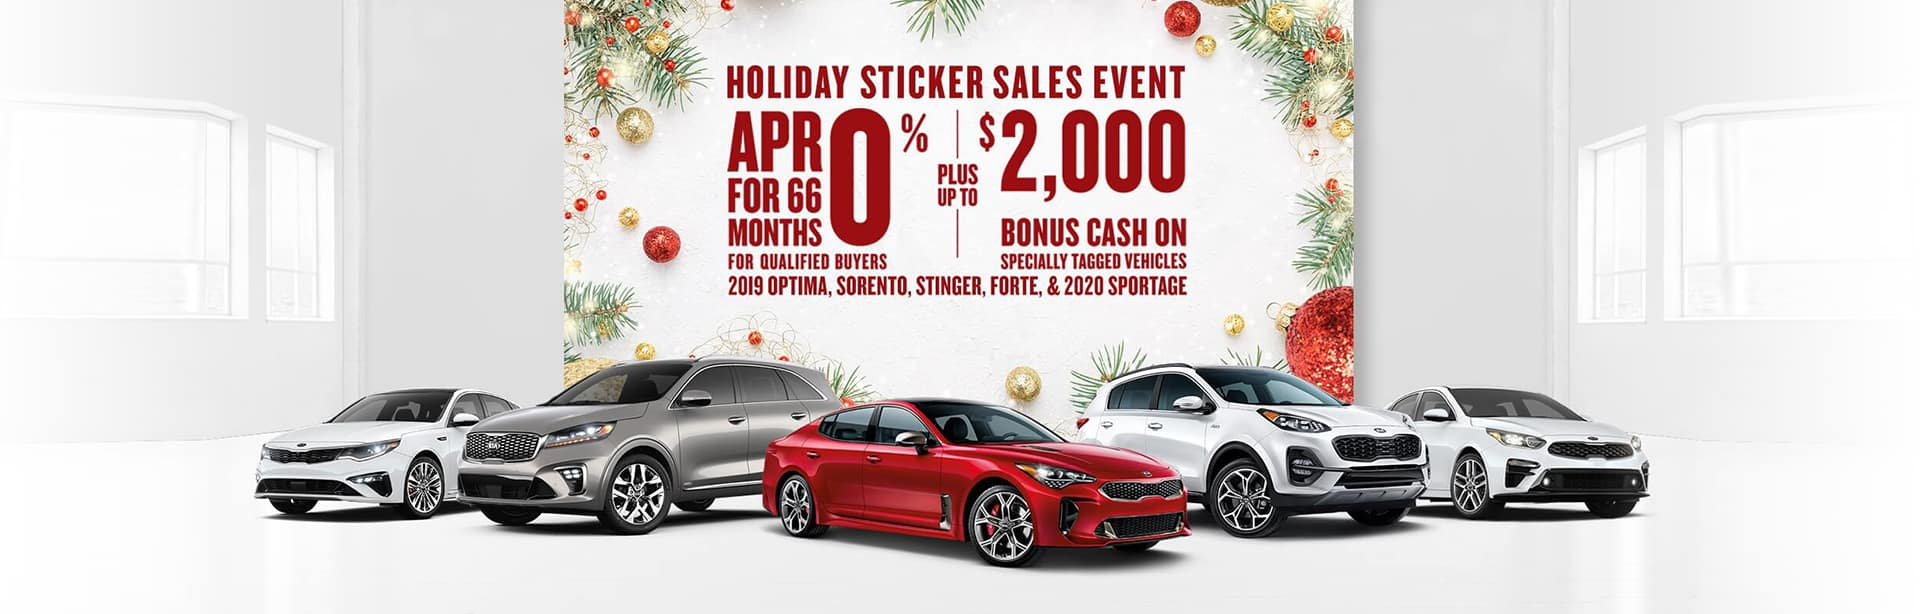 Kia Holiday Offers